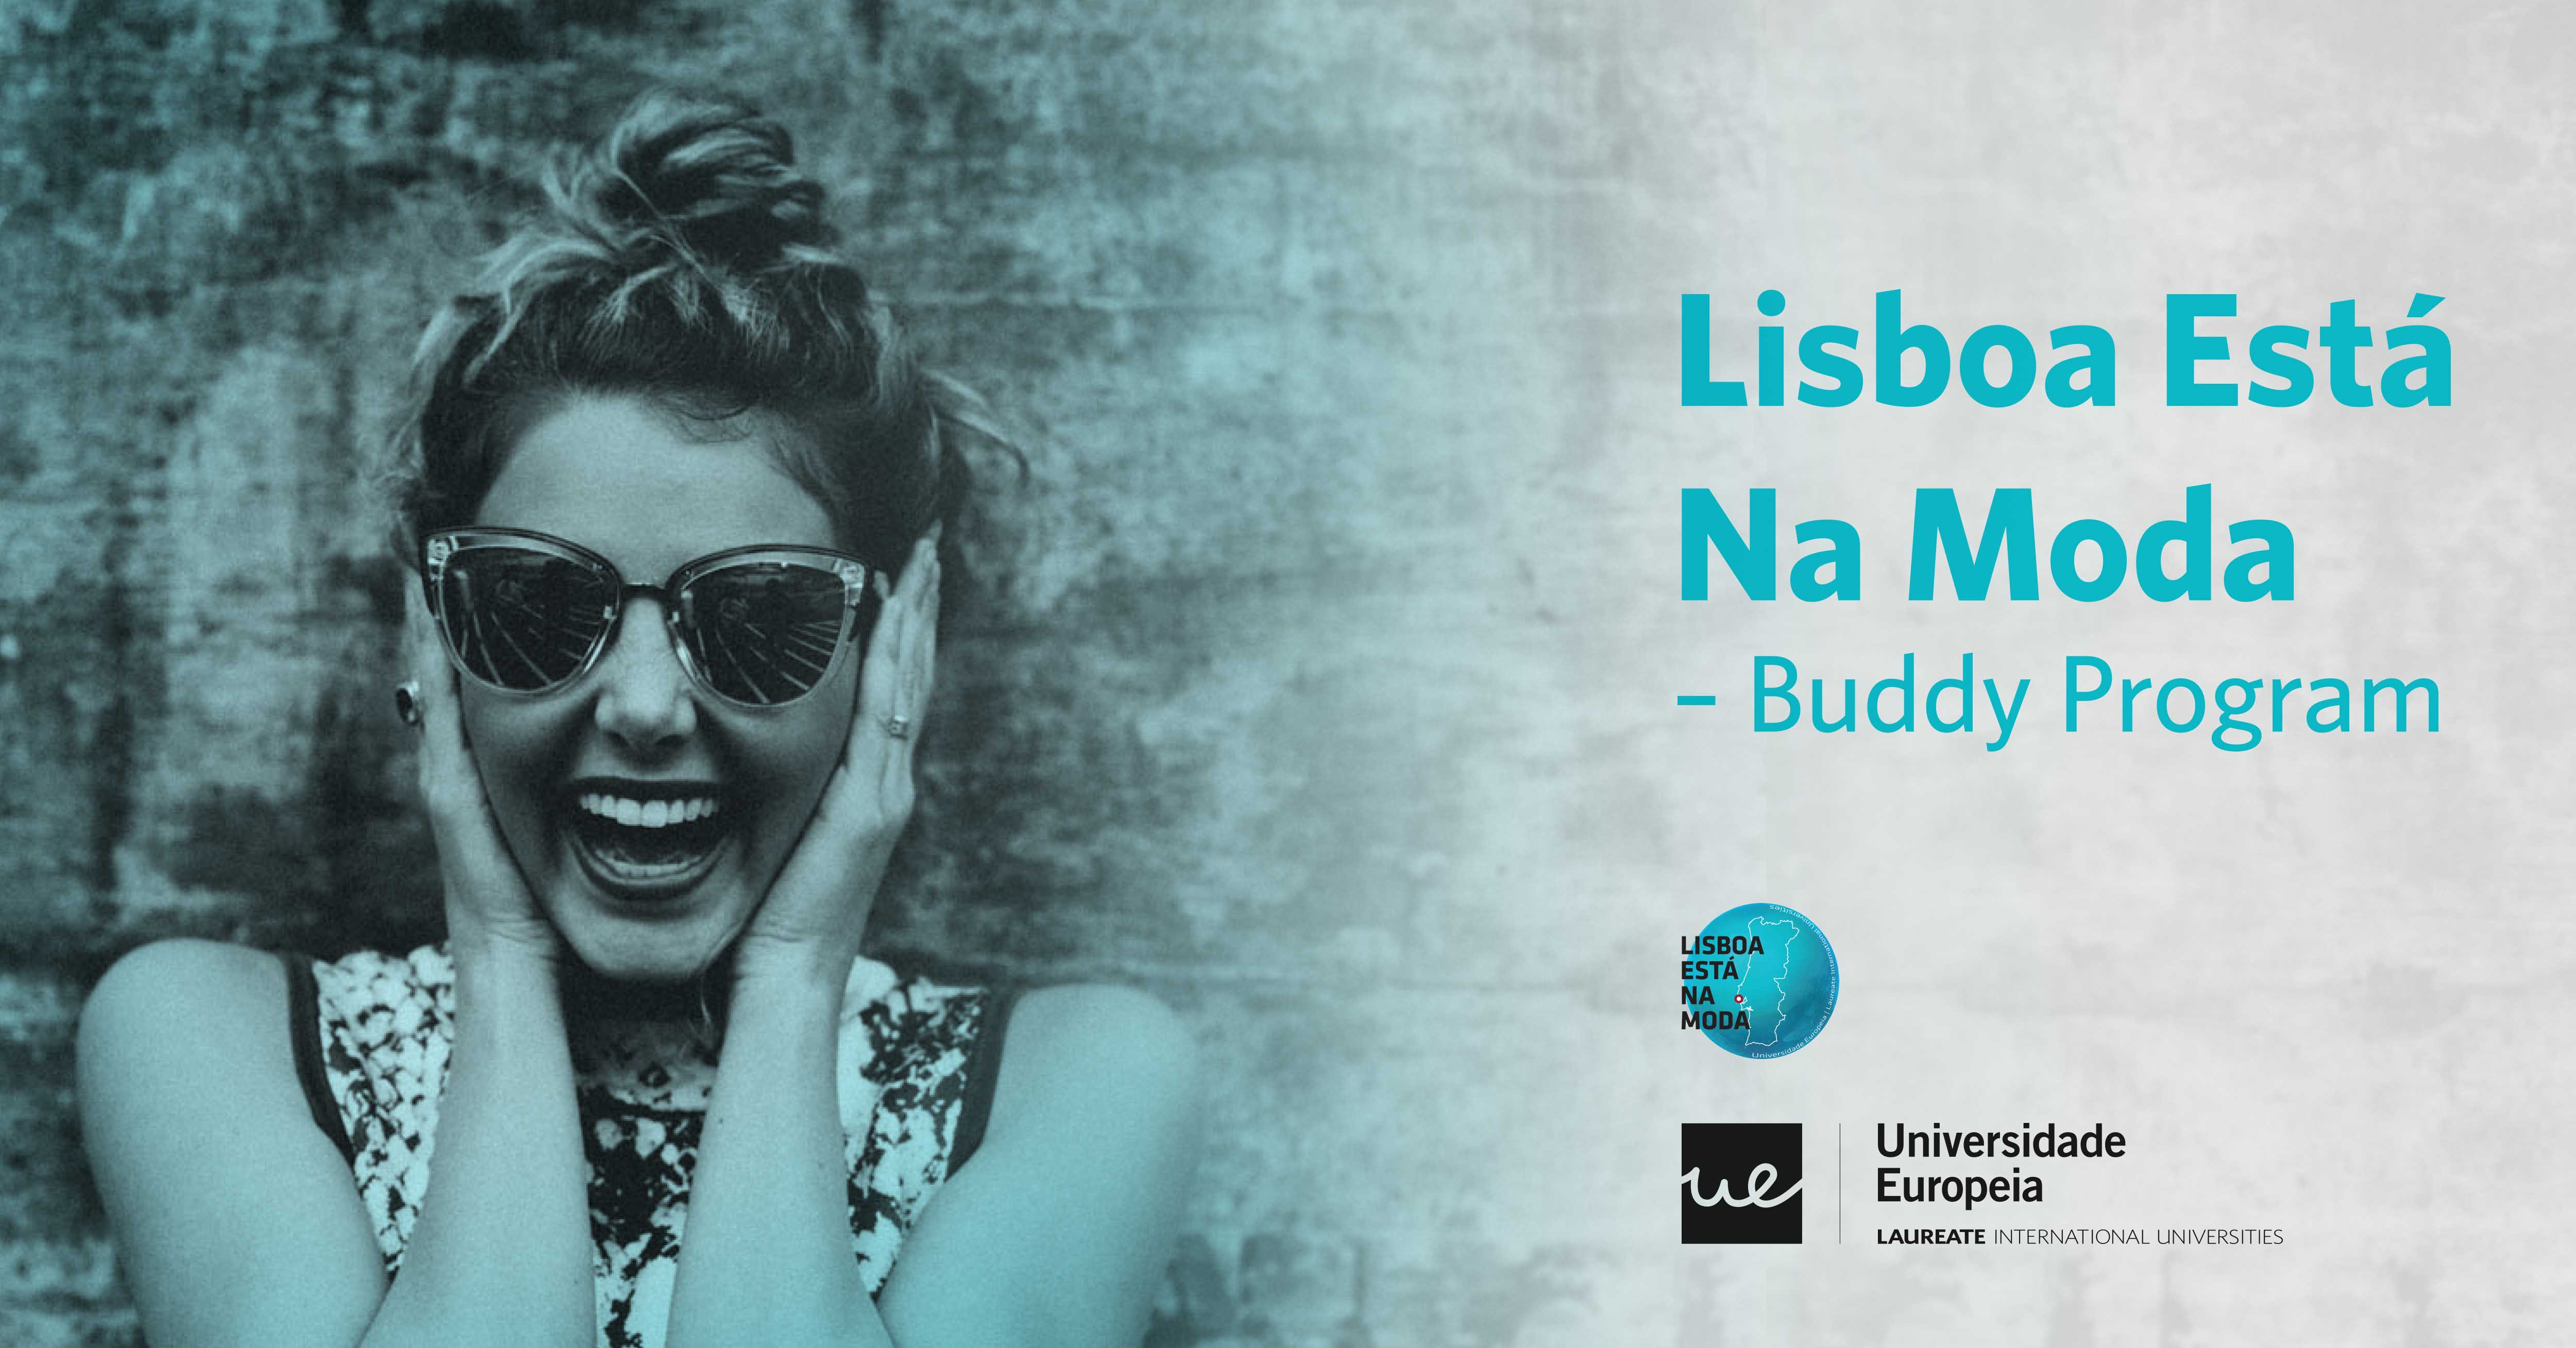 Lisboa Está na Moda - Buddy Program